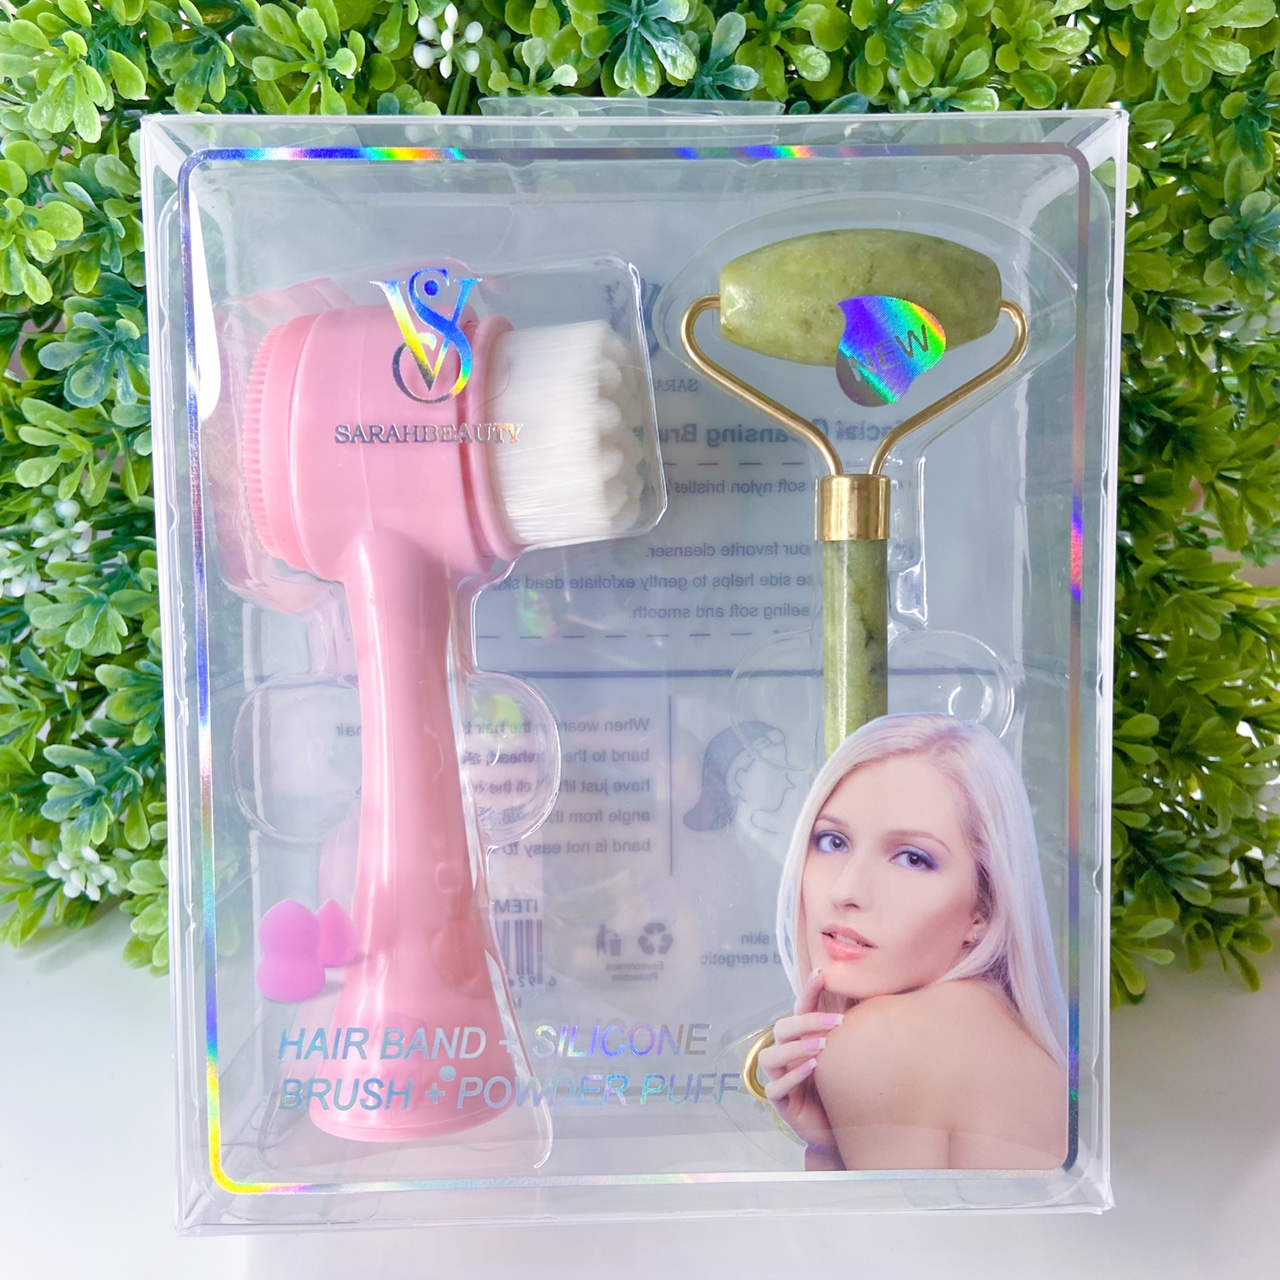 Product Image 1 - Facial cleansing brush and jade